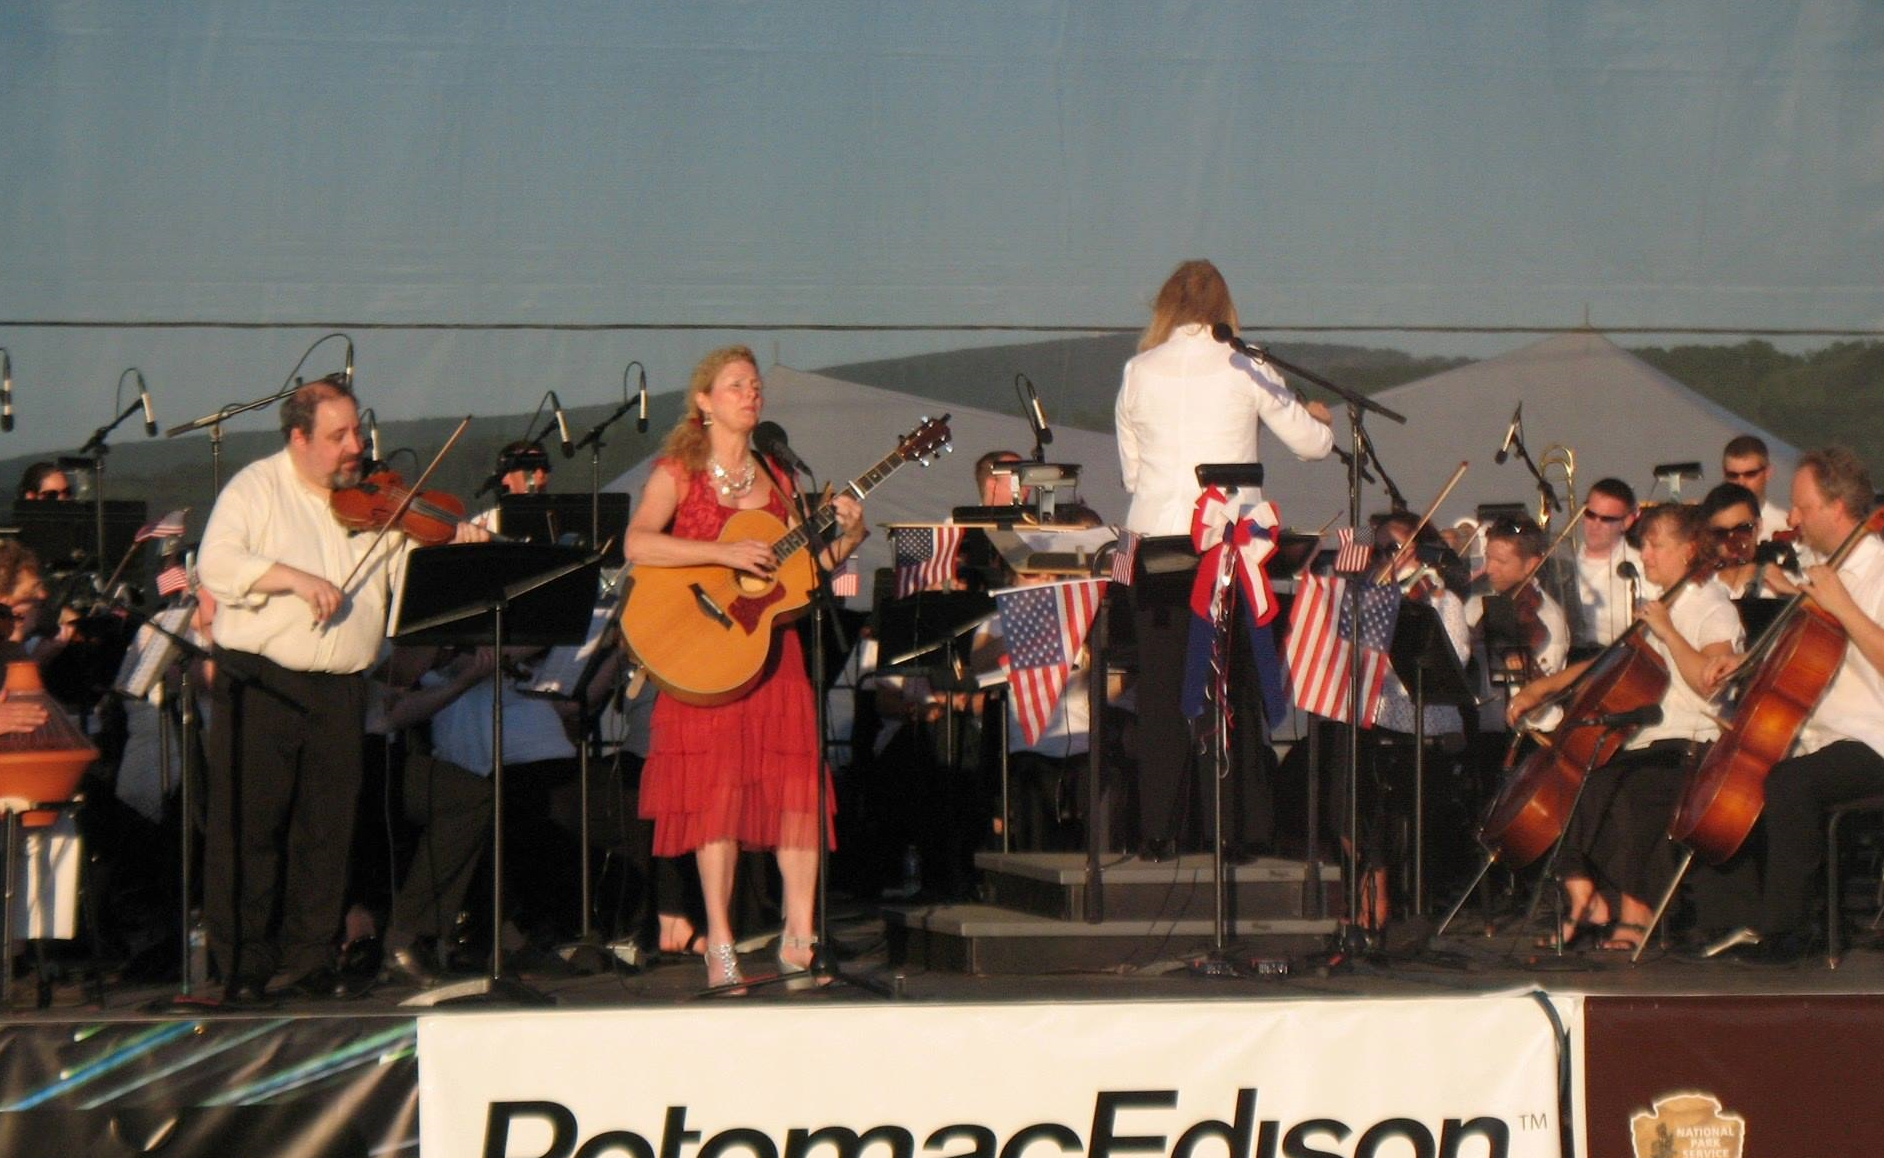 With Jennie Avila and the Maryland Symphony Orchestra under the direction of Elizabeth Schulze. This was for the orchestra's July 4th concert at the Antietam Battlefield. I got to play 2 of Jennie's songs with her and the orchestra and they played an orchestration I did. July 2013